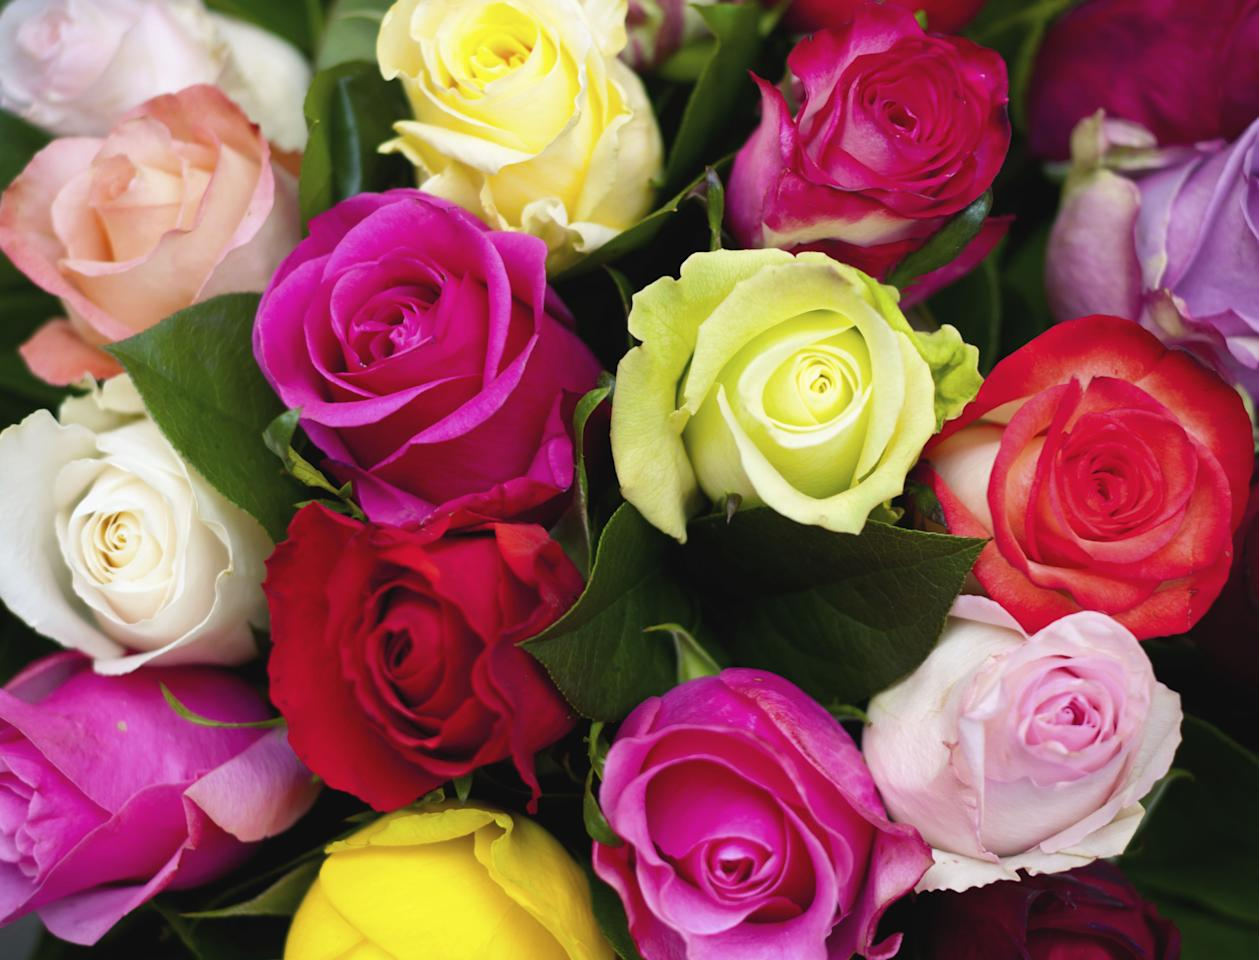 <p>Do you know the meanings of these coloured roses?</p>